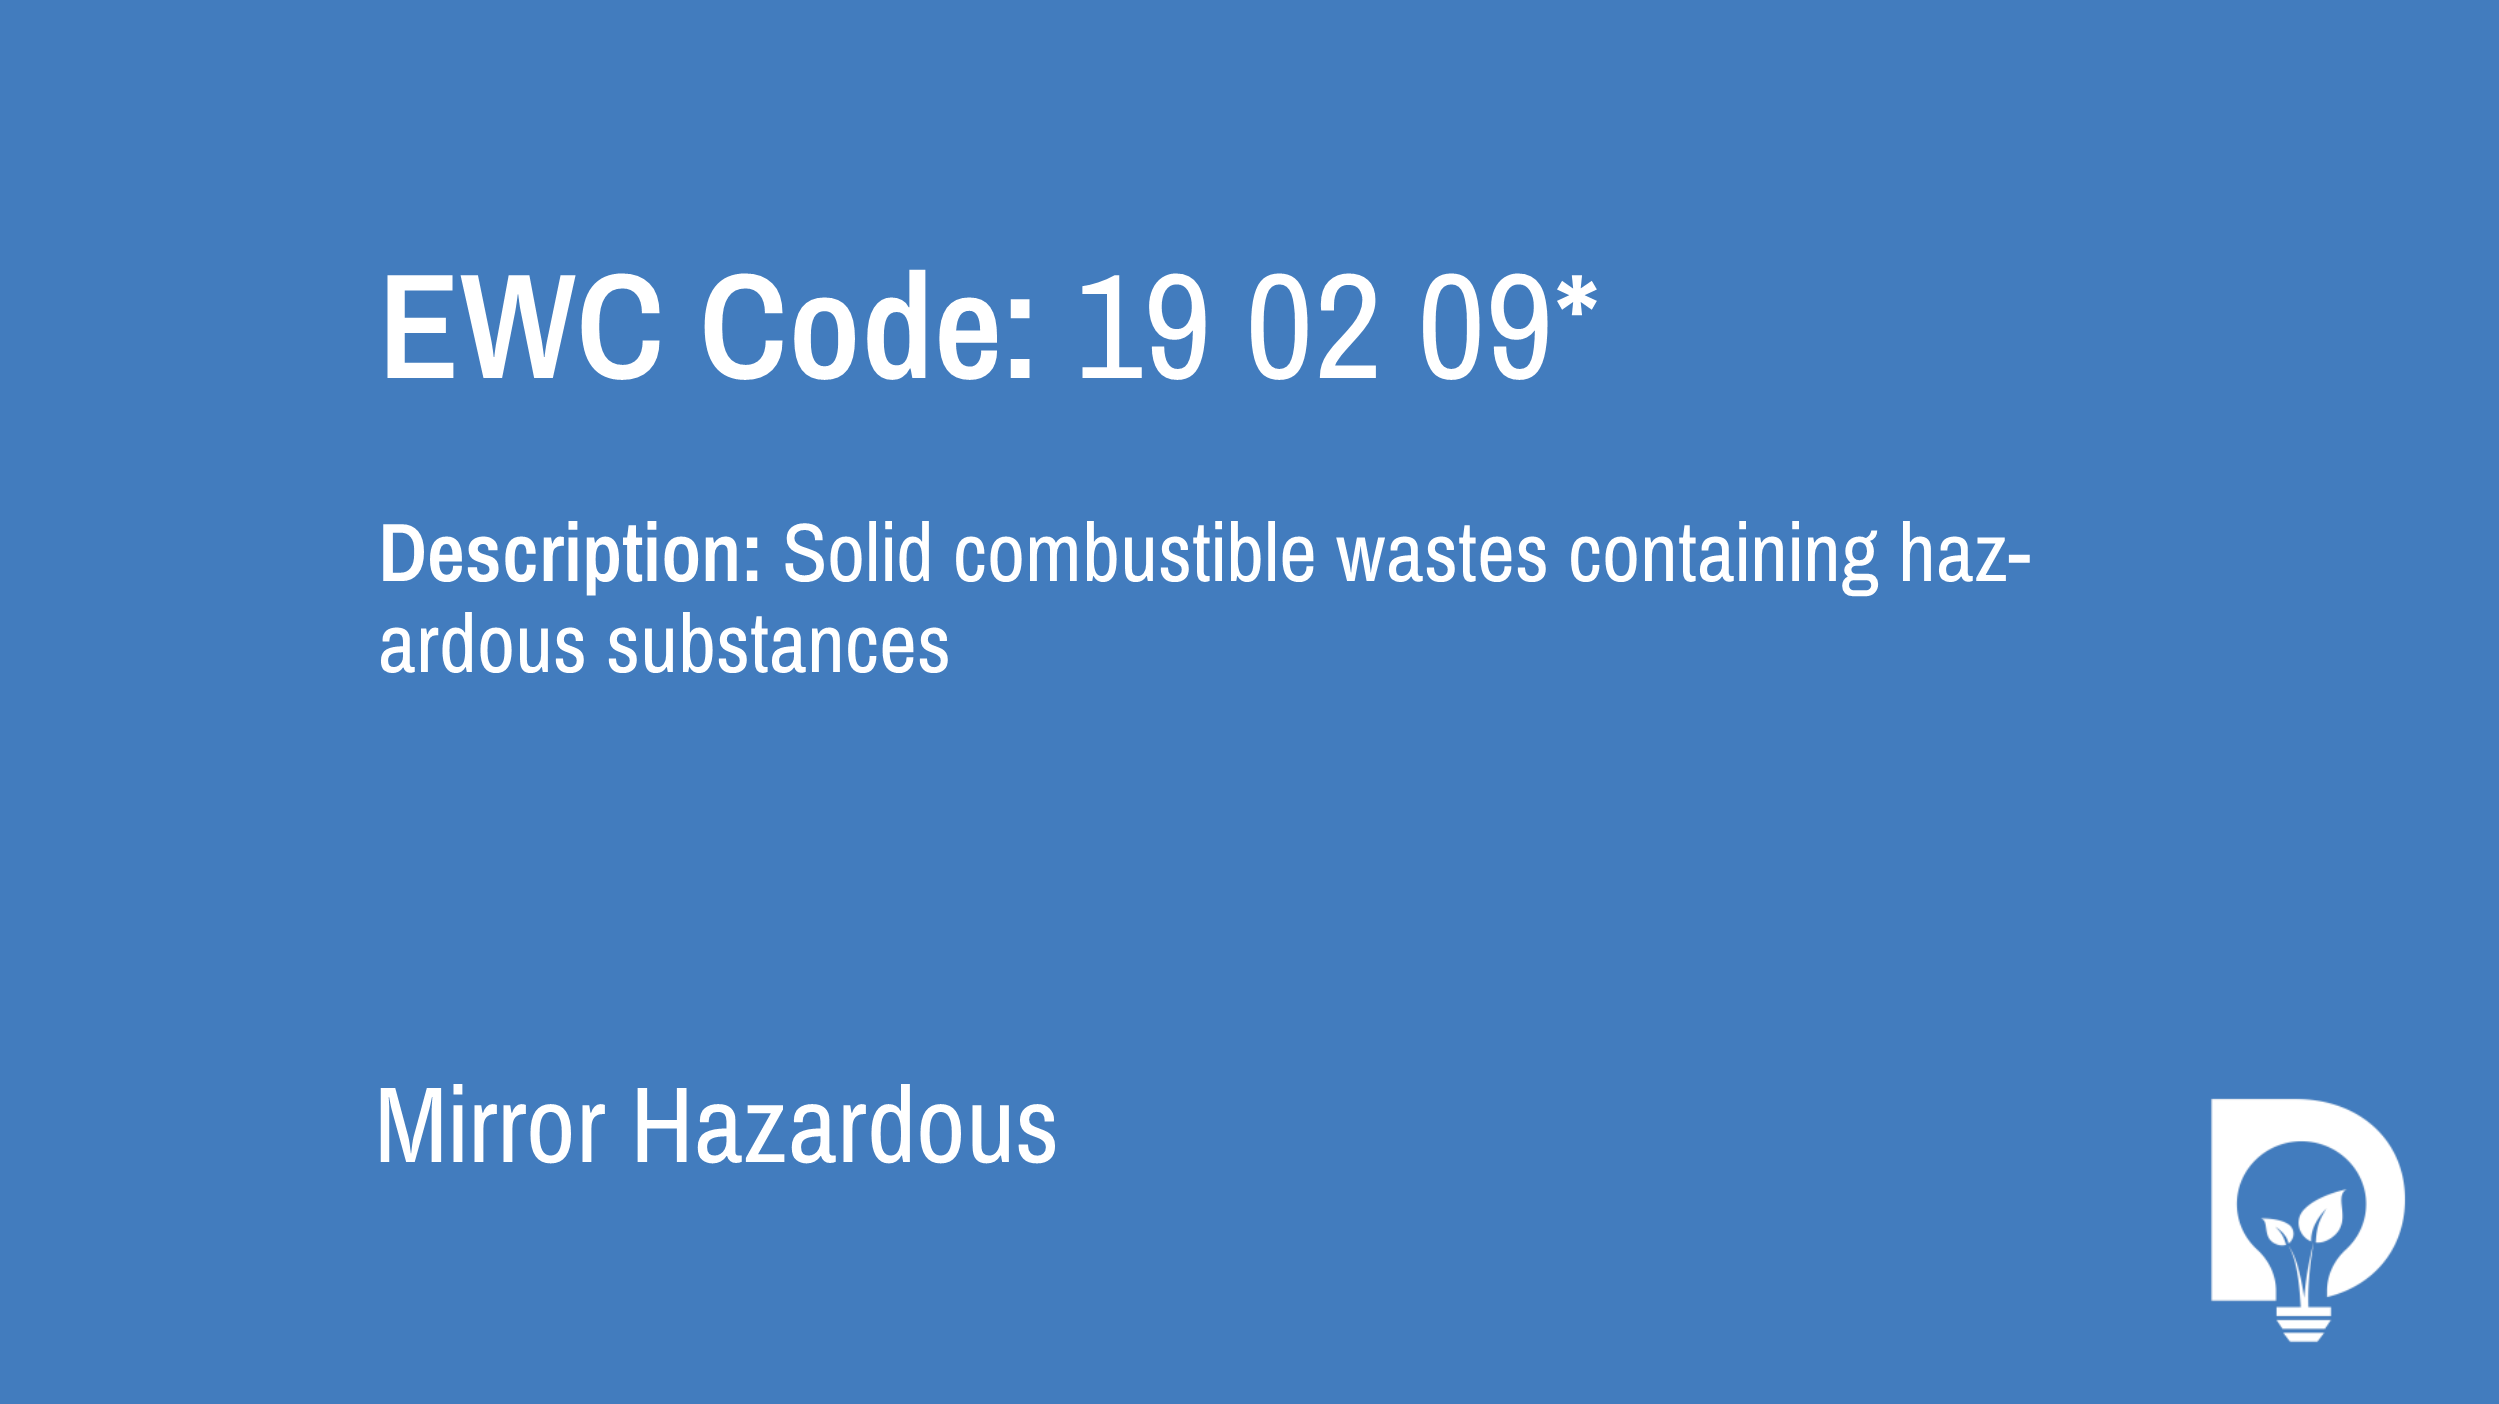 EWC Code: 19 02 09* - solid combustible wastes containing hazardous substances. Type: Mirror Hazardous. Image by Dsposal